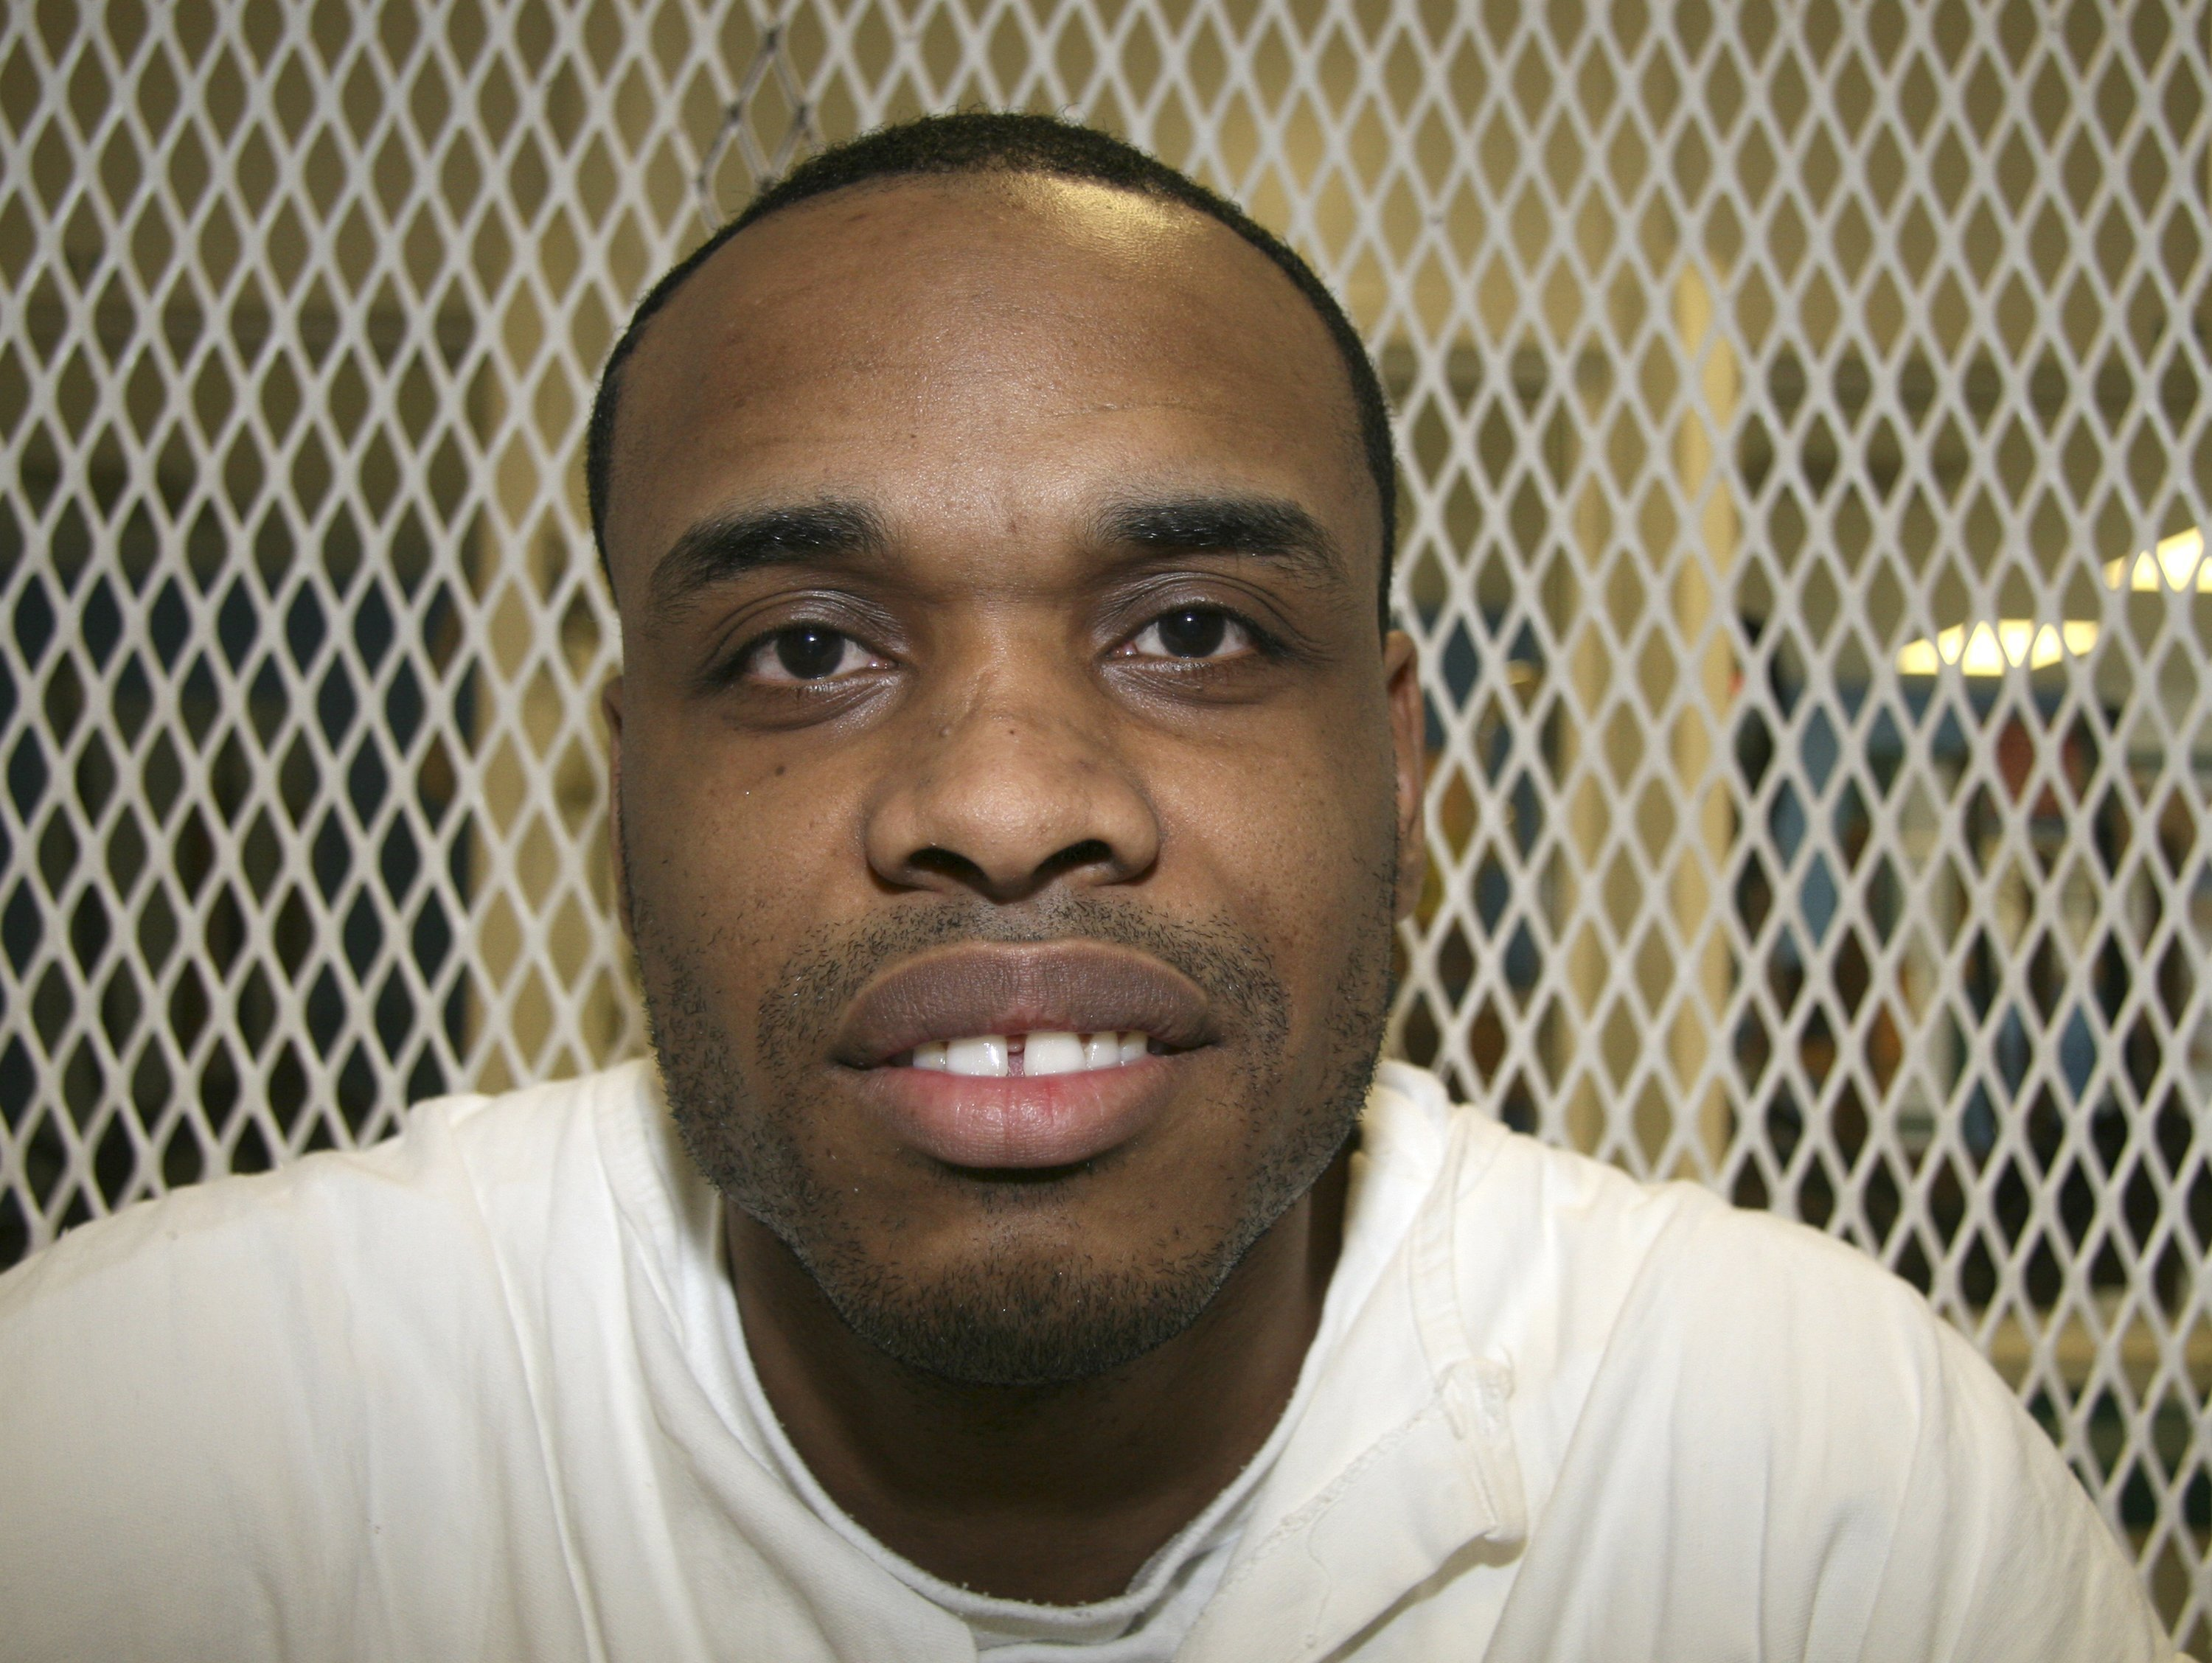 San Antonio store owner's killer set for execution